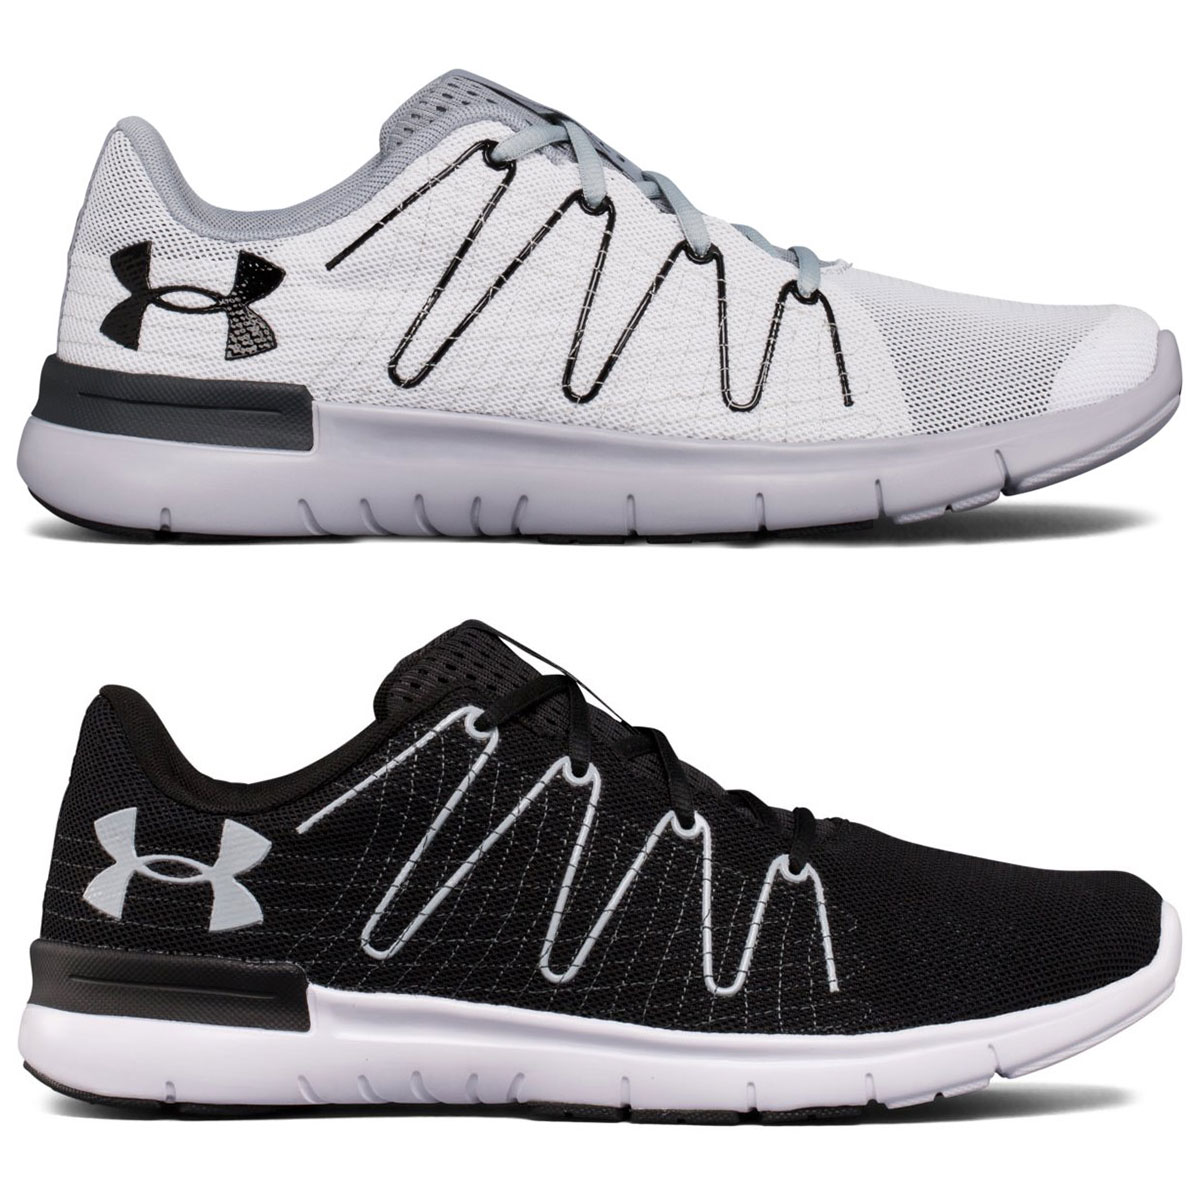 new style 0772e 15c3e Details about Under Armour Mens UA Thrill 3 Running Trainers - Black/White  - UK 10.5